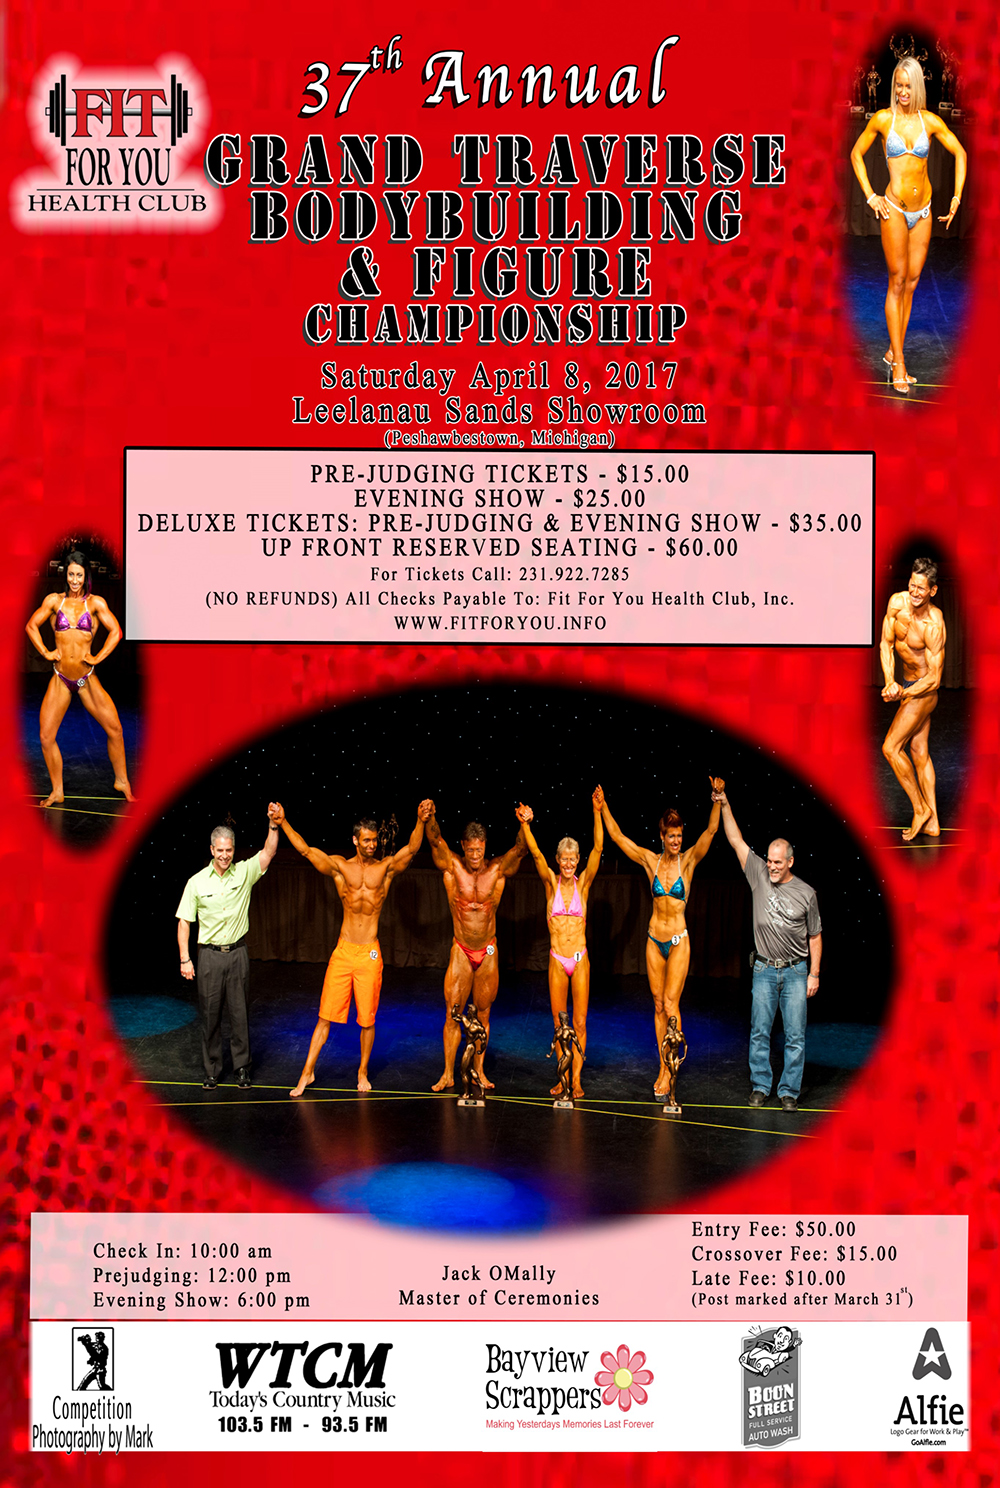 Grand Traverse Bodybuilding & Figure Championship